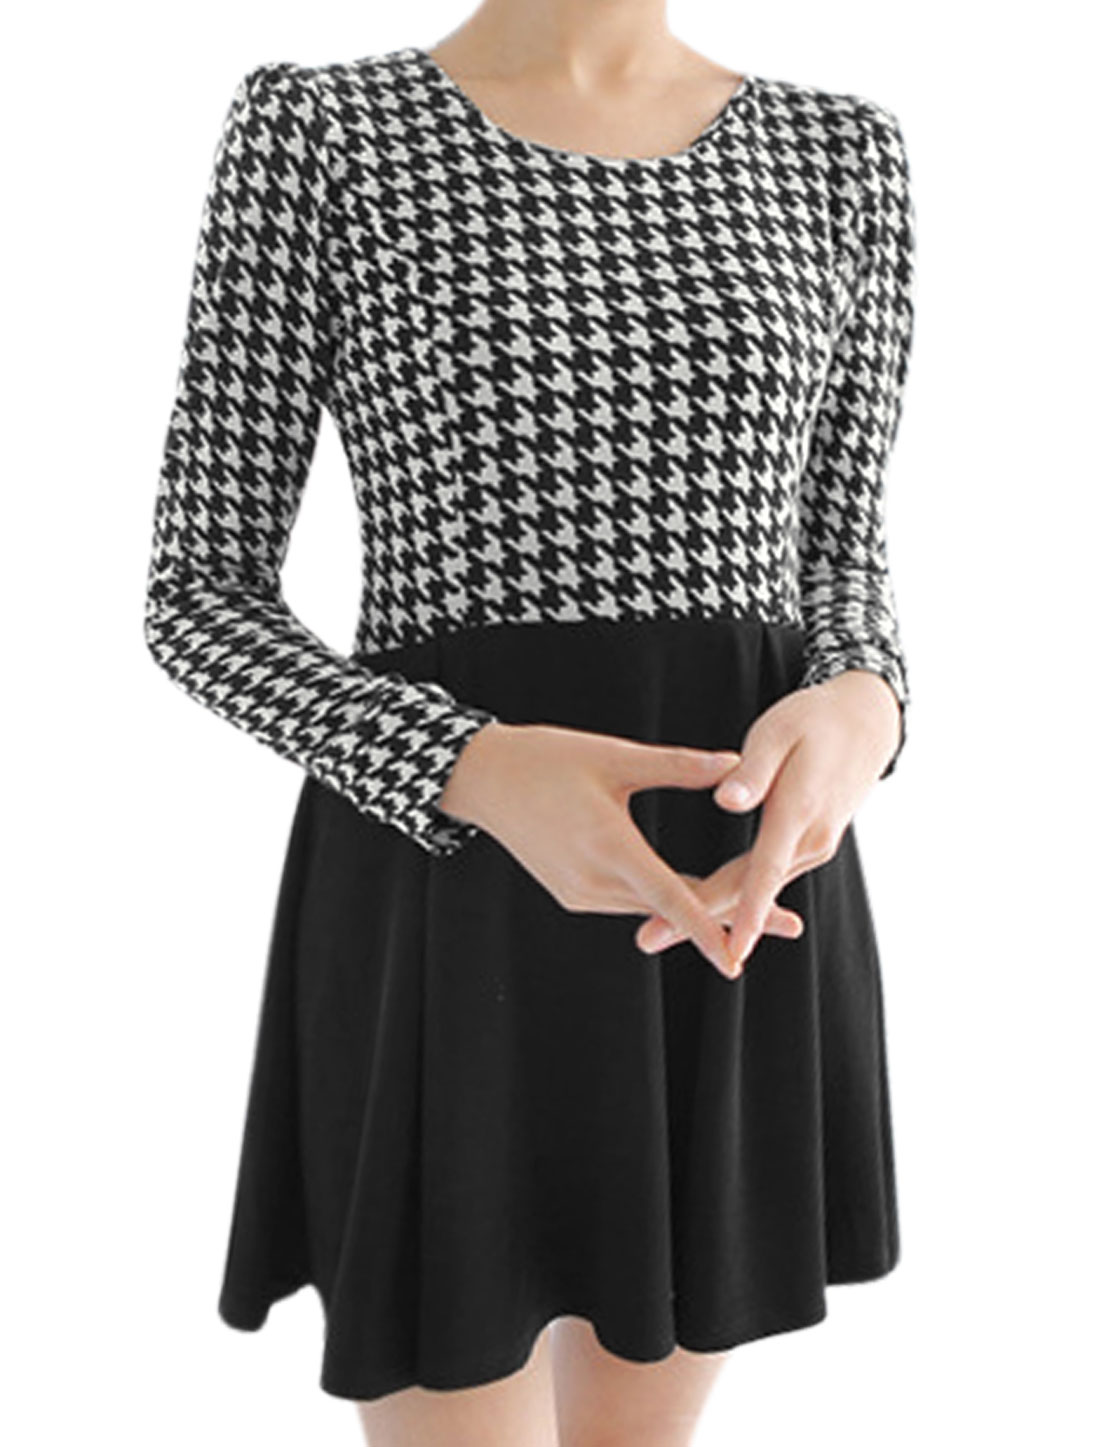 Women Houndstooth Long Sleeves Panel A-line Dress Black Beige S